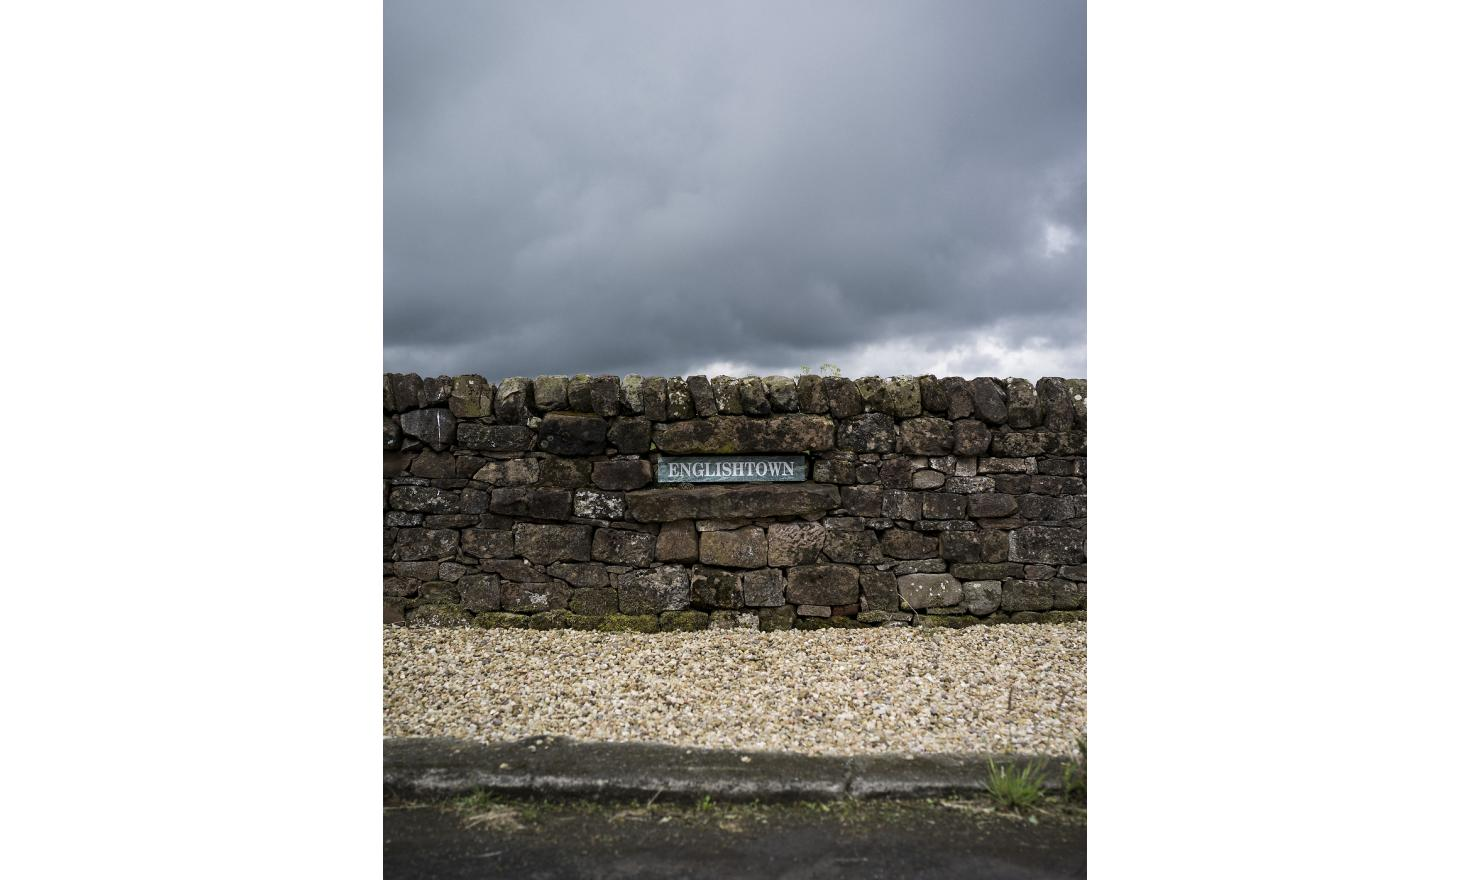 """A sign in a wall on the border between Scotland and England reads """"Englishtown"""". The two countries were divided by the Brexit vote, with Scotland choosing to remain and England choosing to leave"""